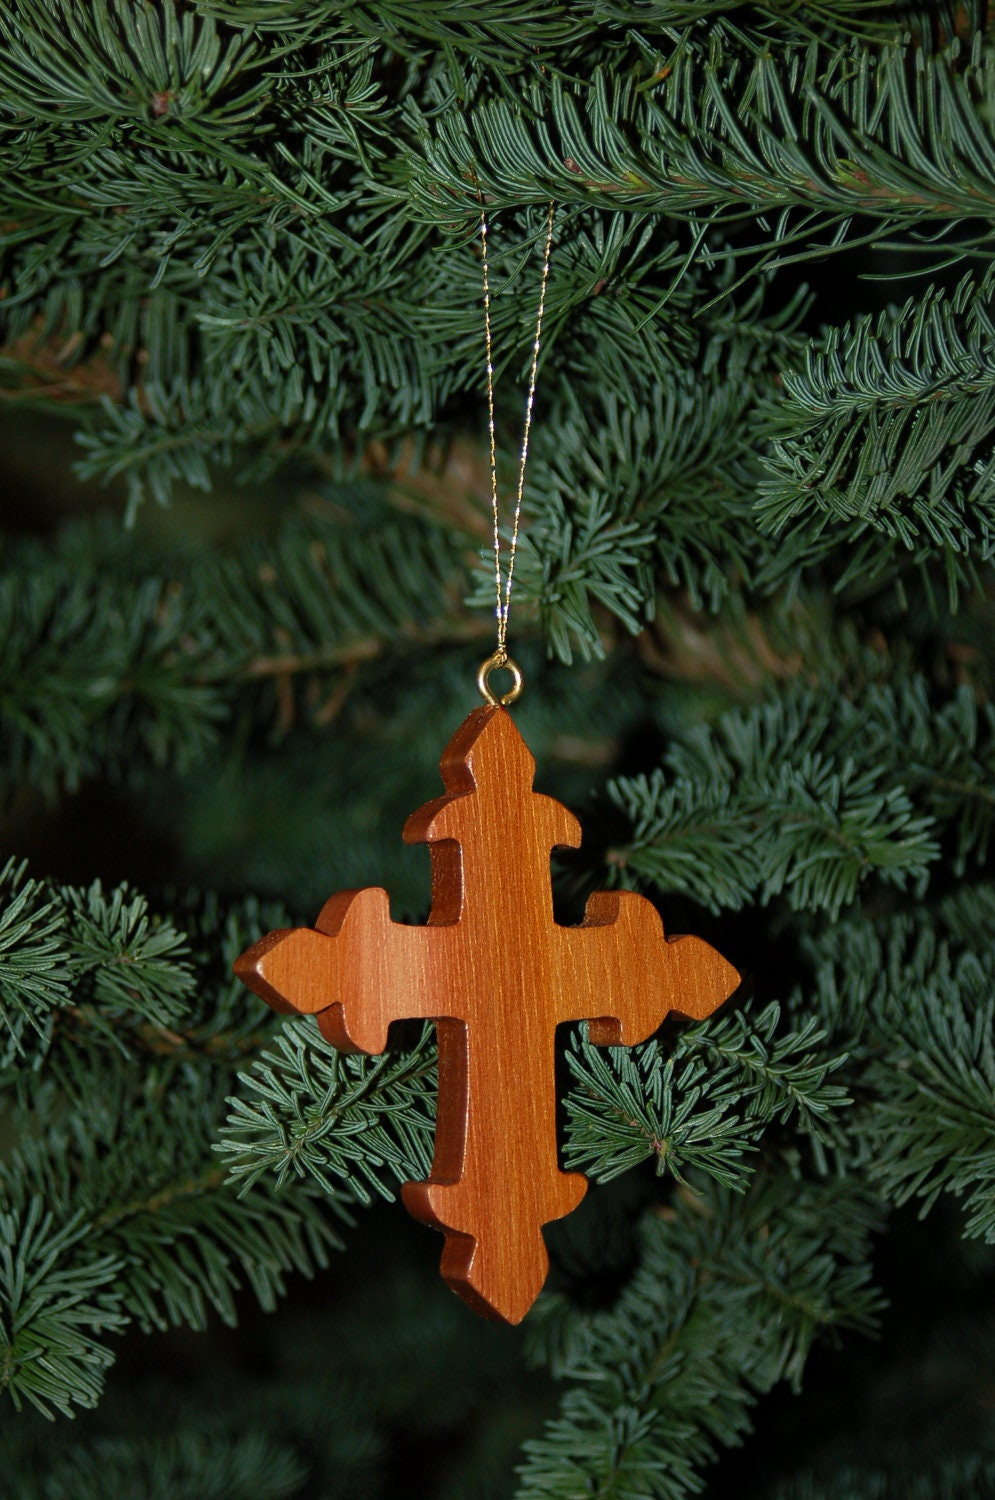 CROSS CHRISTMAS ORNAMENT Wood Carving. Trim your holiday tree with a meaningful and traditional symbol. Sure to be treasured.